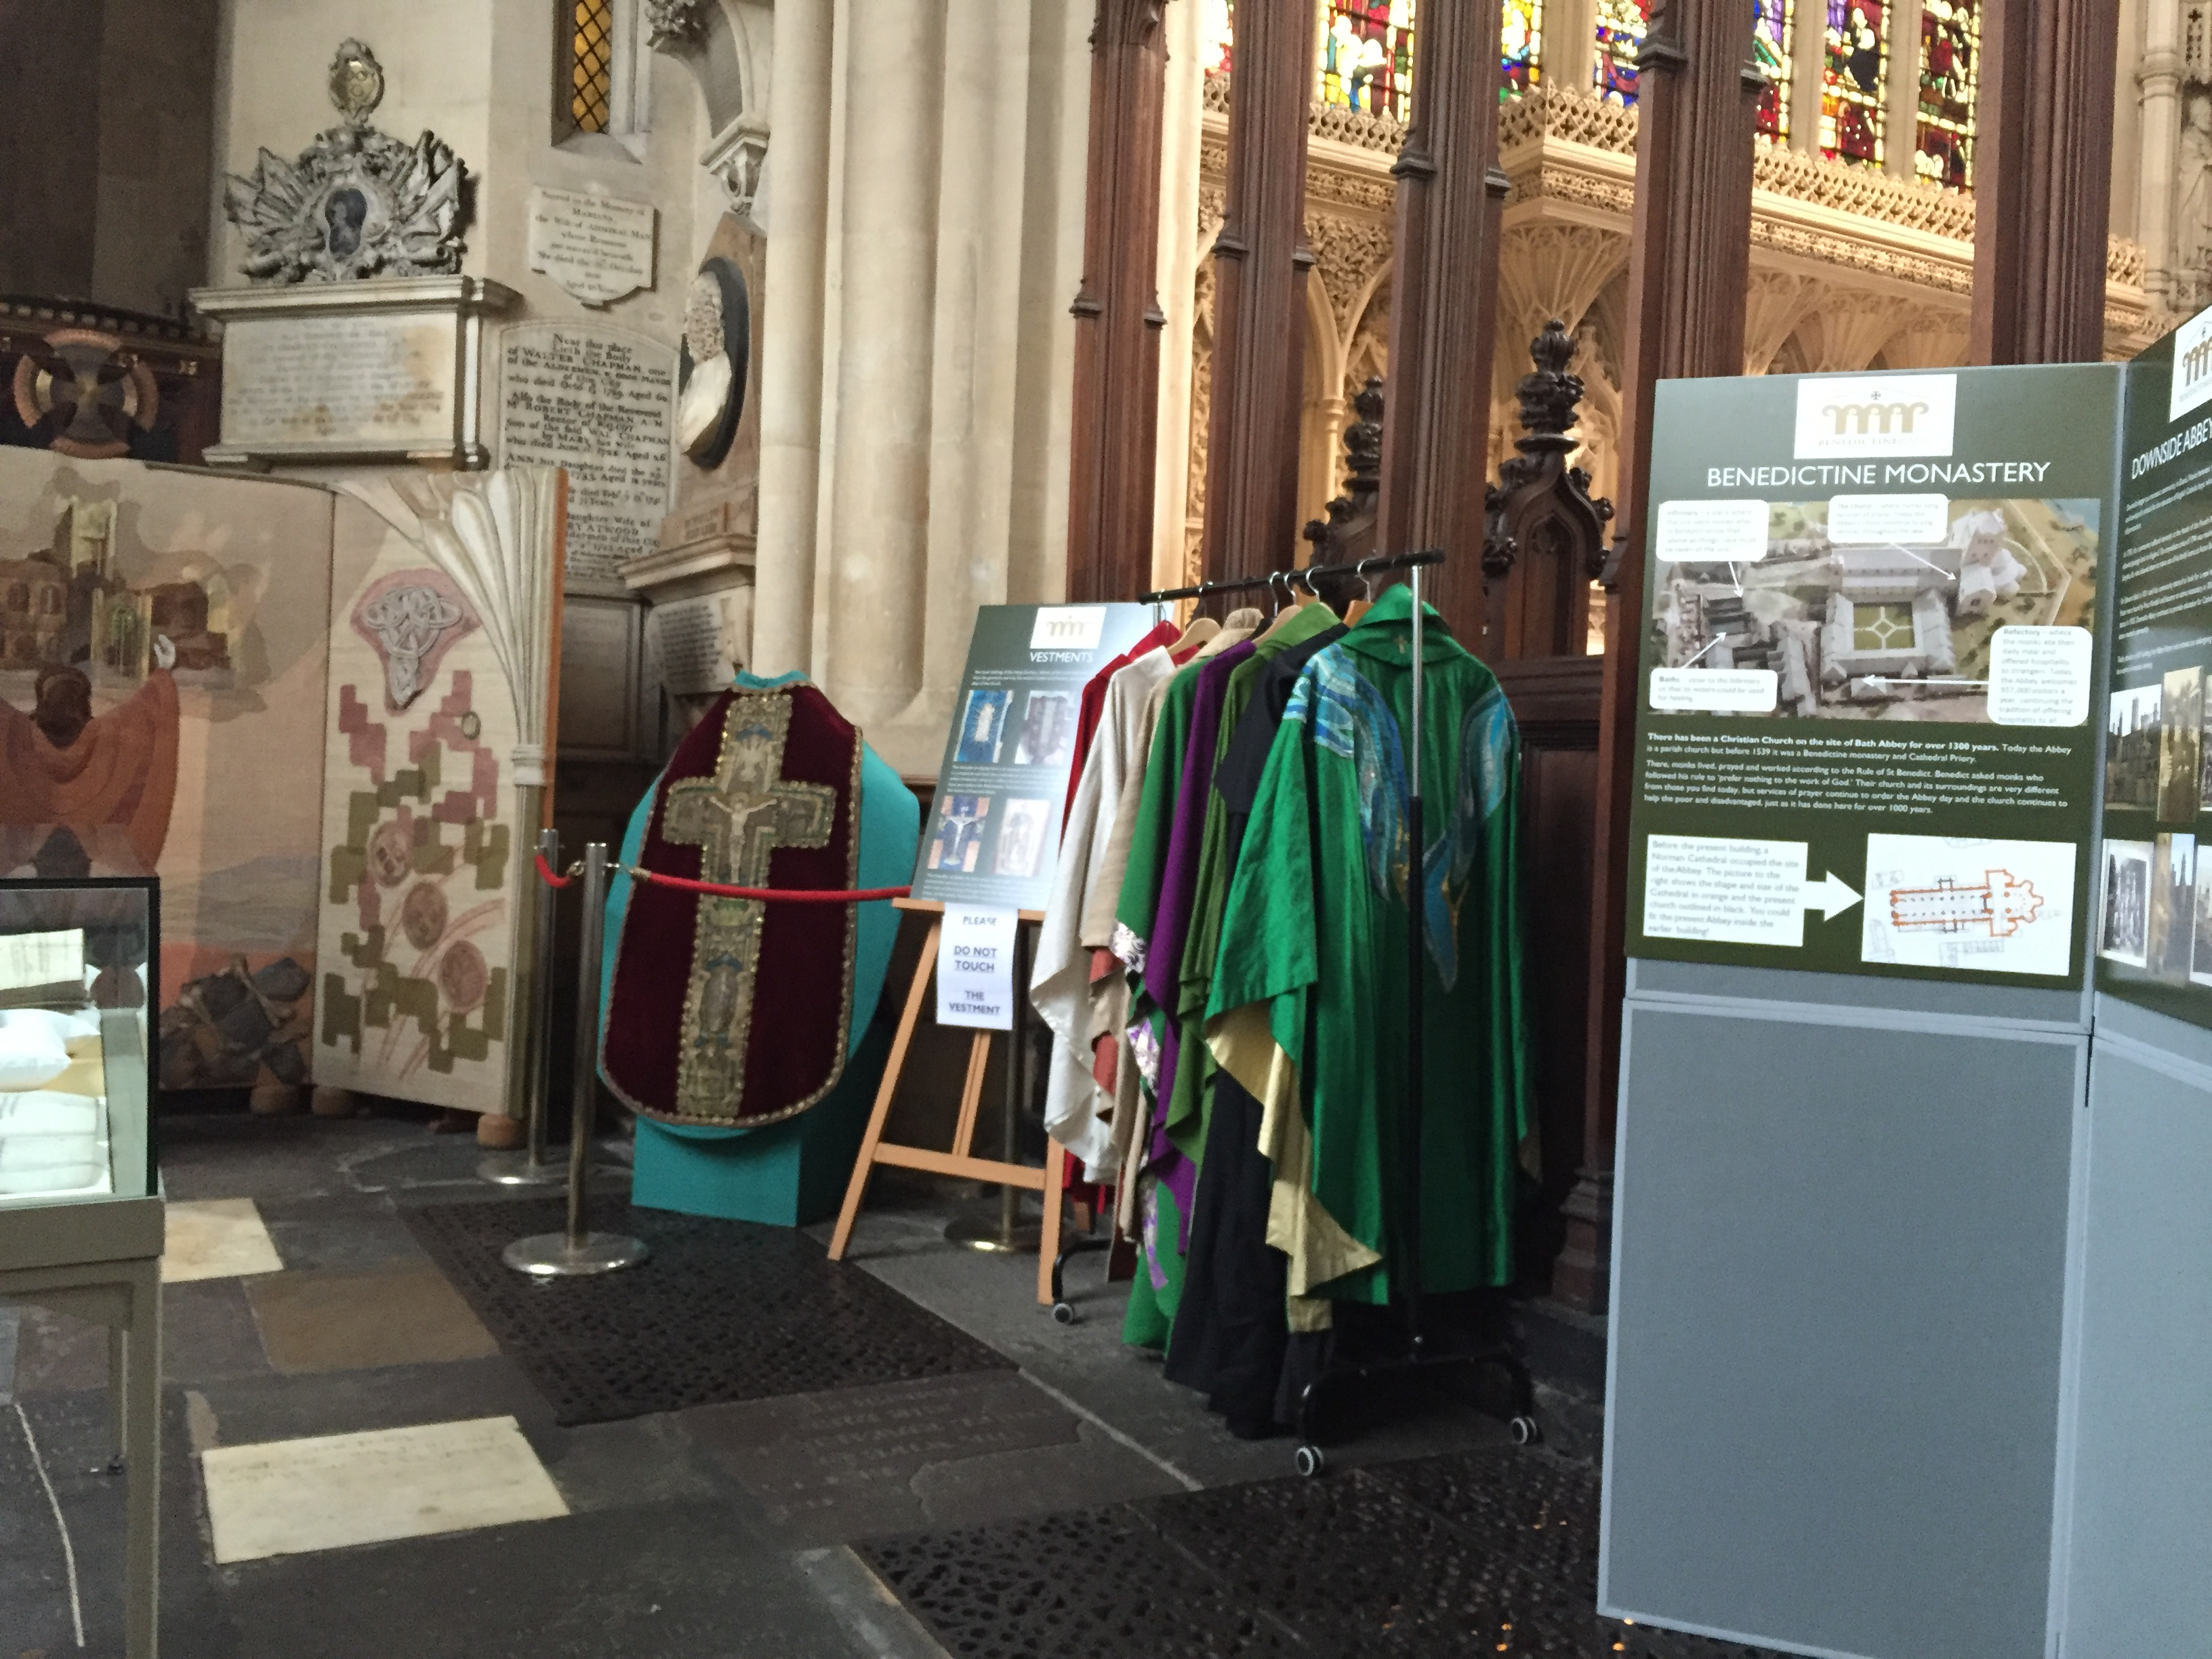 Benedictine Bath religious gowns and information